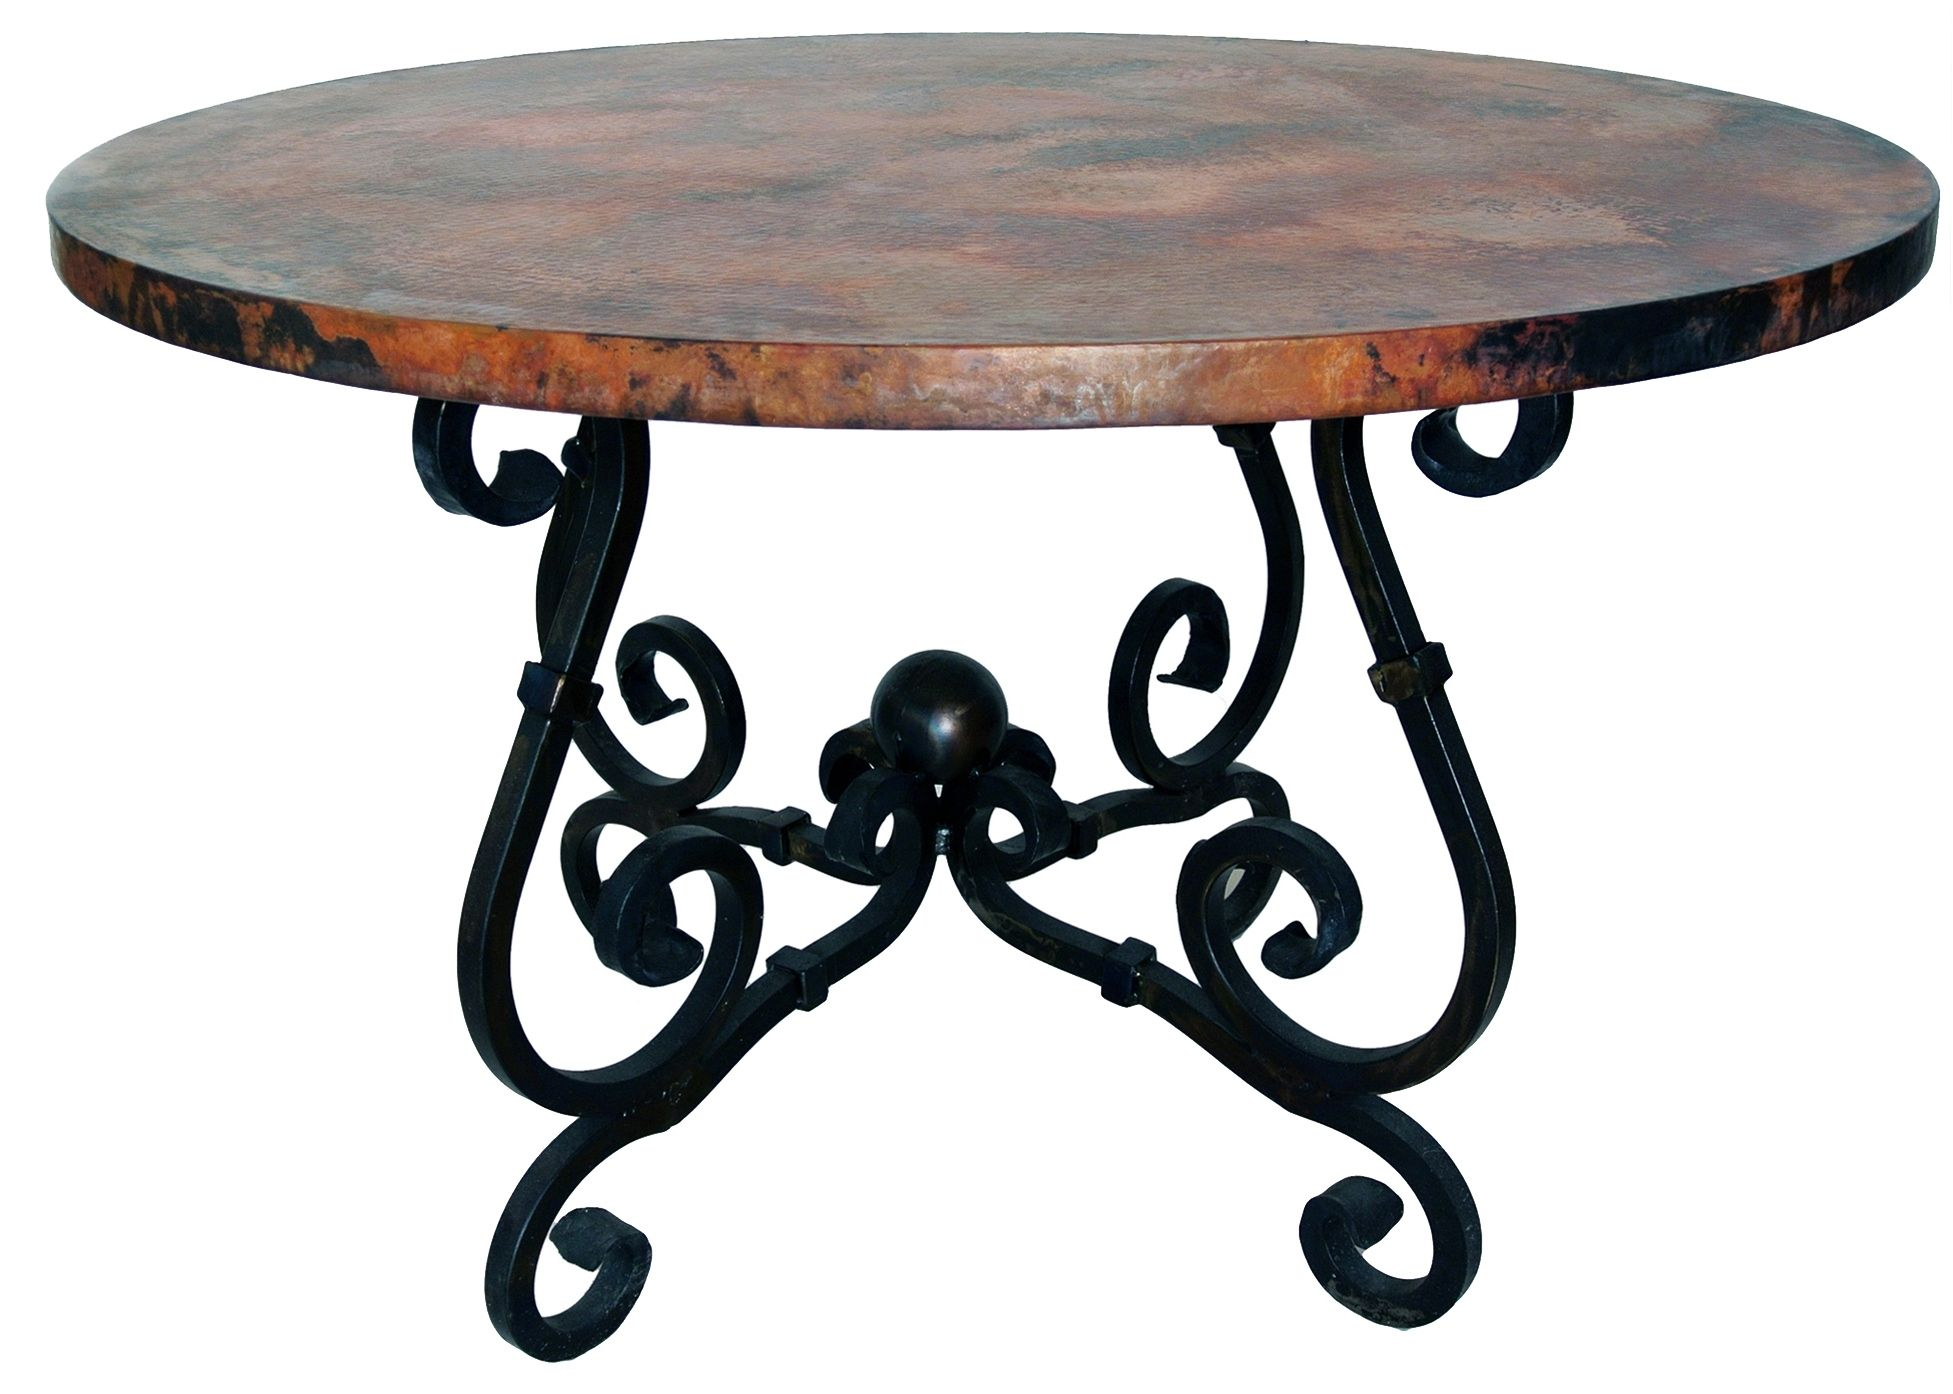 Wrought Iron Kitchen Table With Marble Top